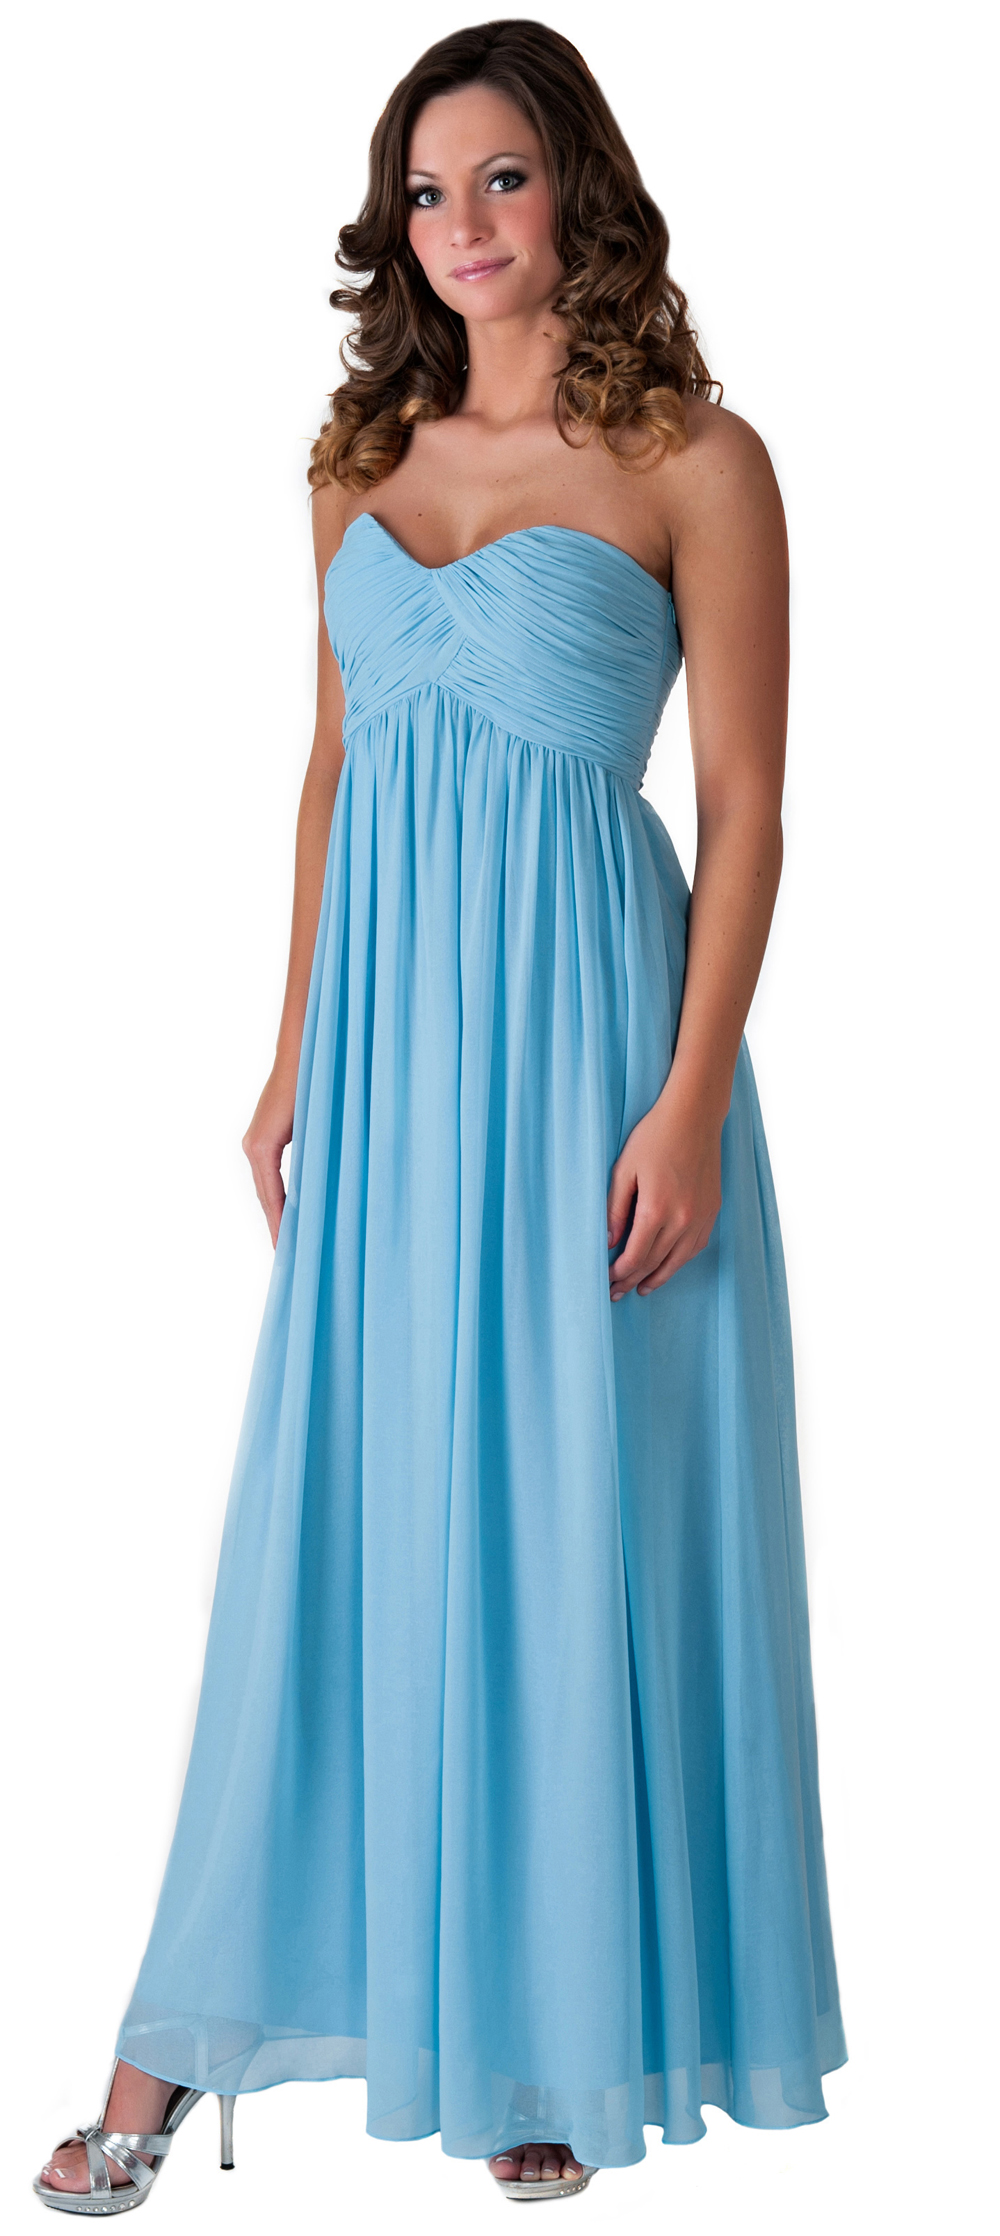 Formal Dress Full Length Evening Gown Bridesmaid Wedding Party Prom ...